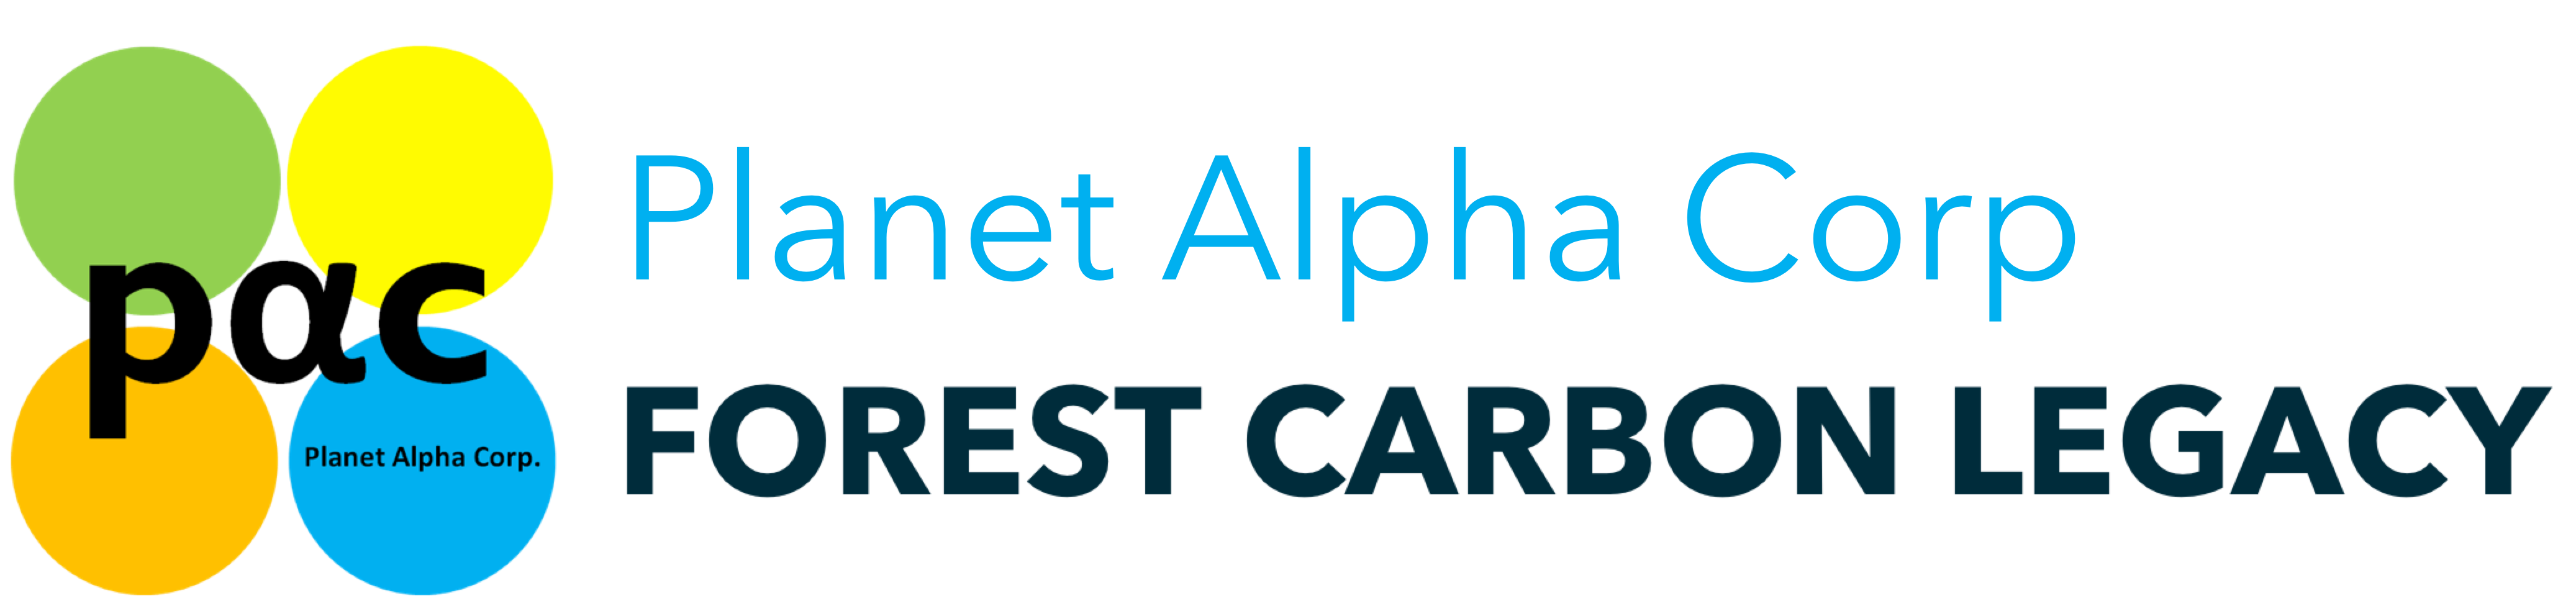 Home Planet Alpha Corp Forest Carbon Legacy